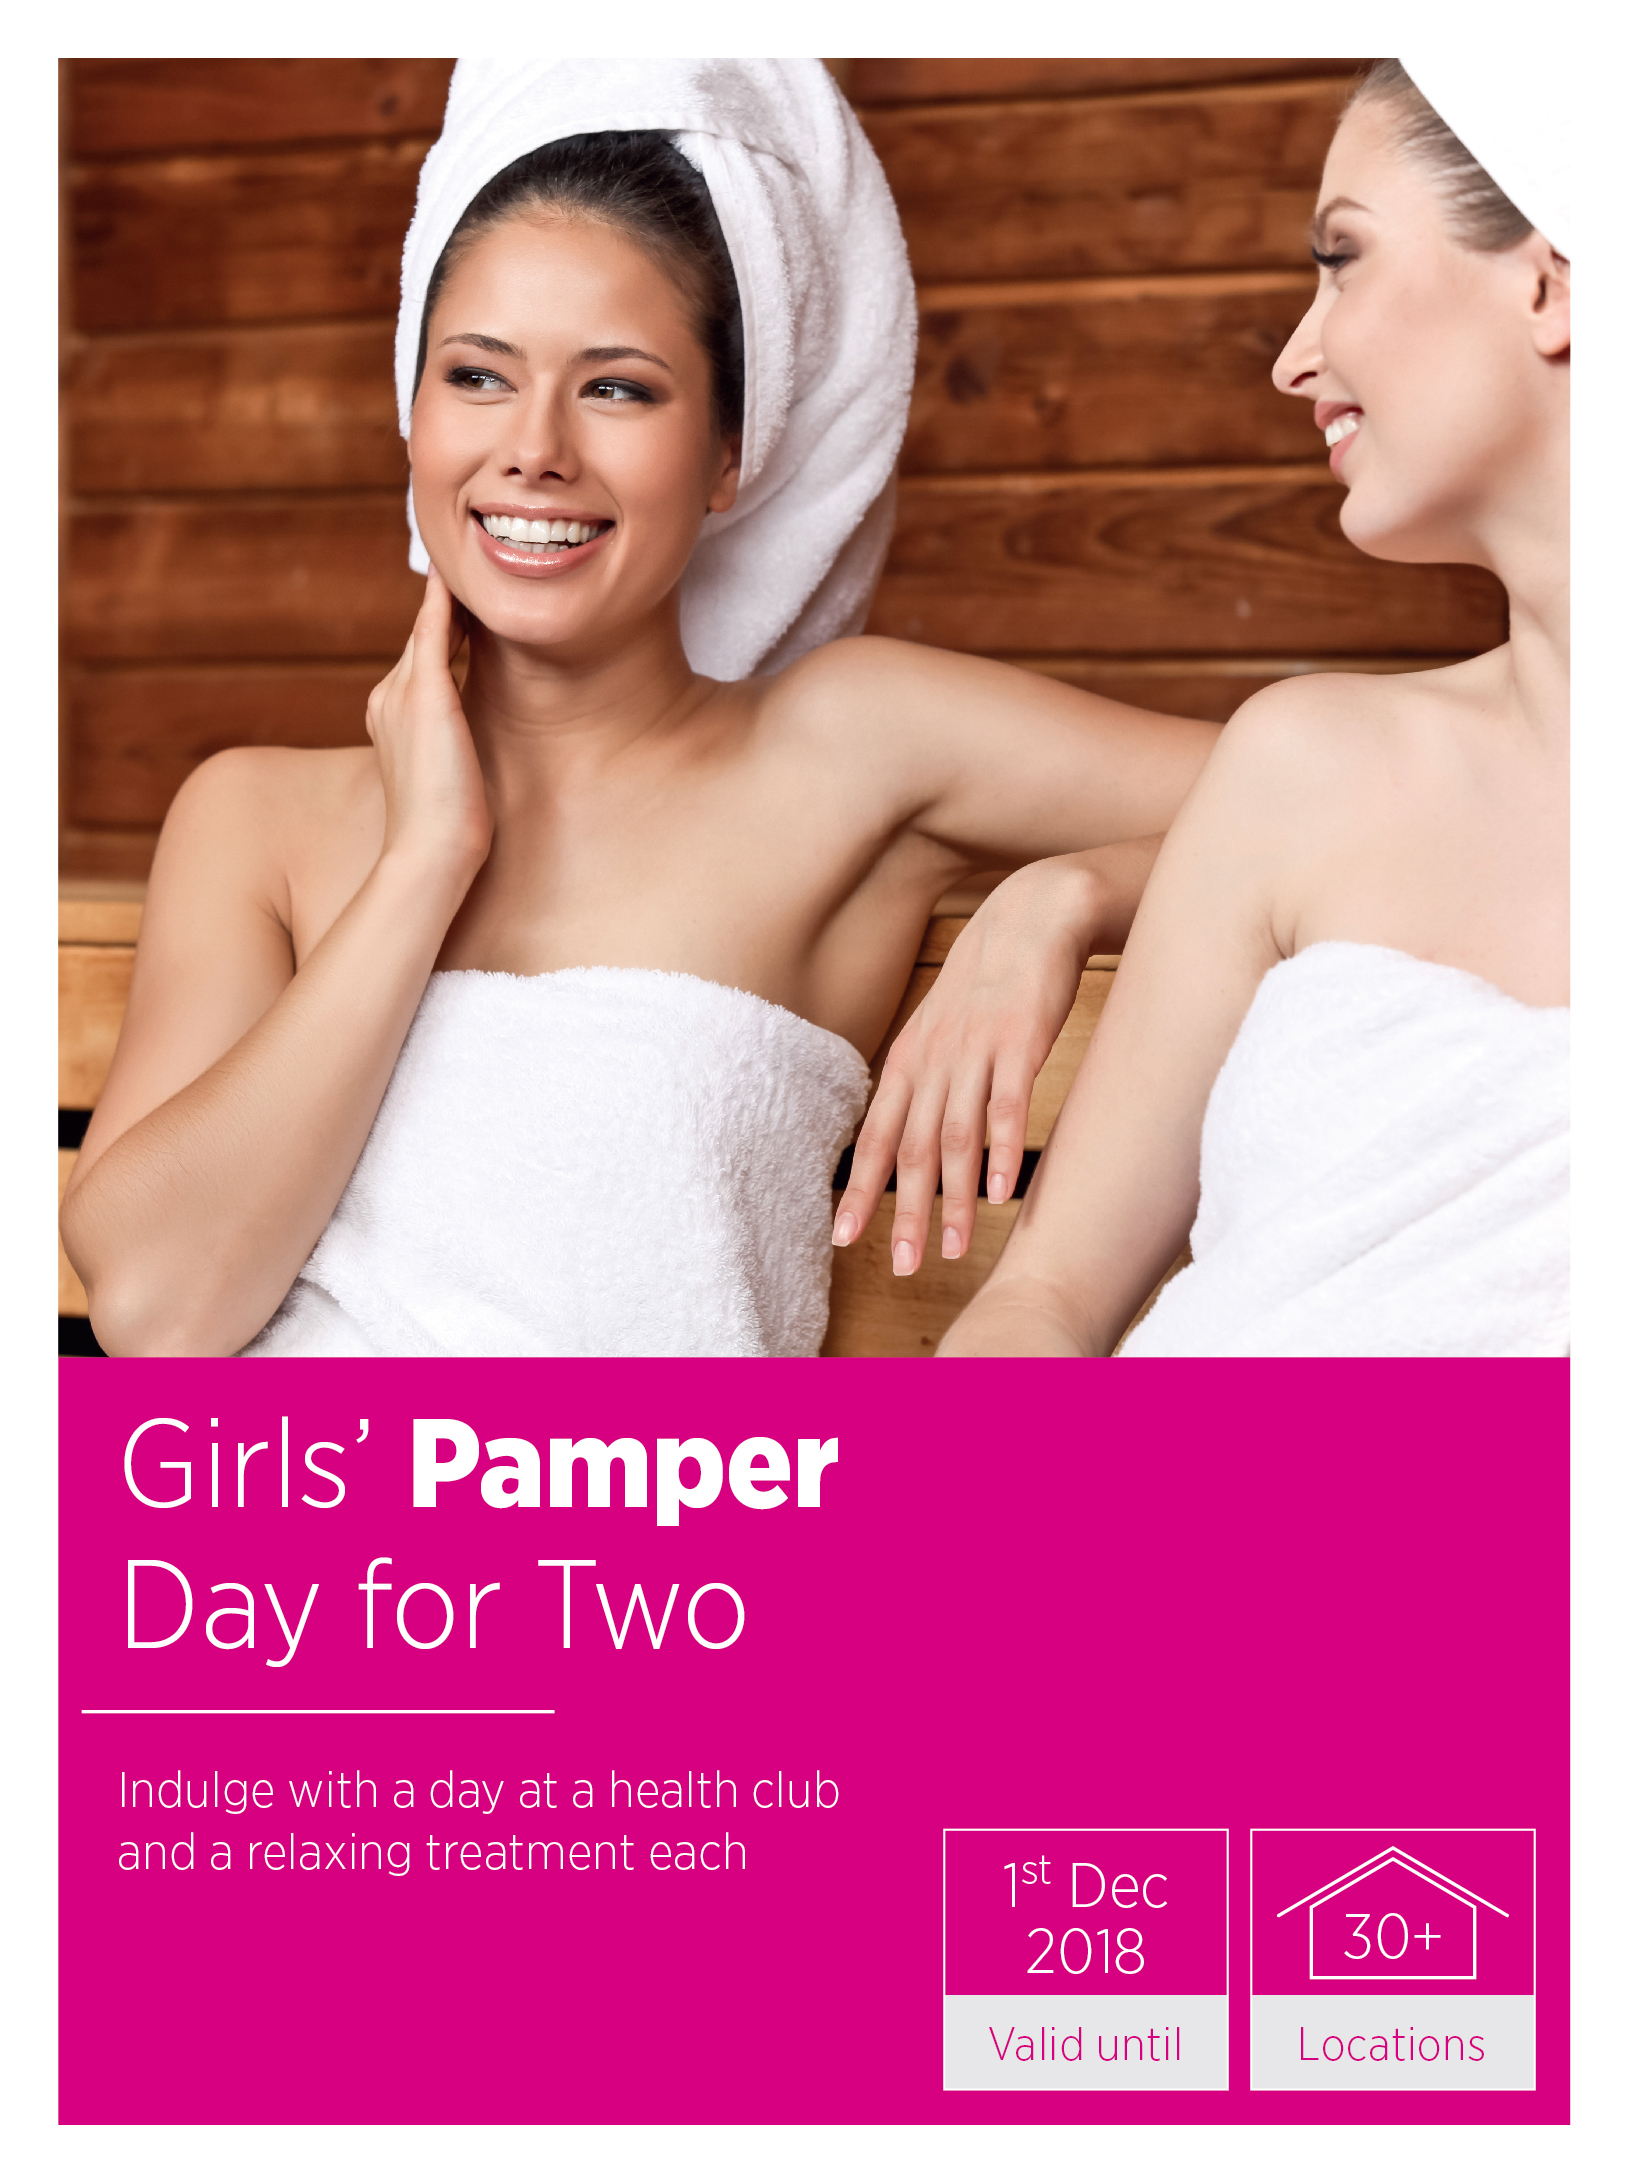 Pamper Day for 2